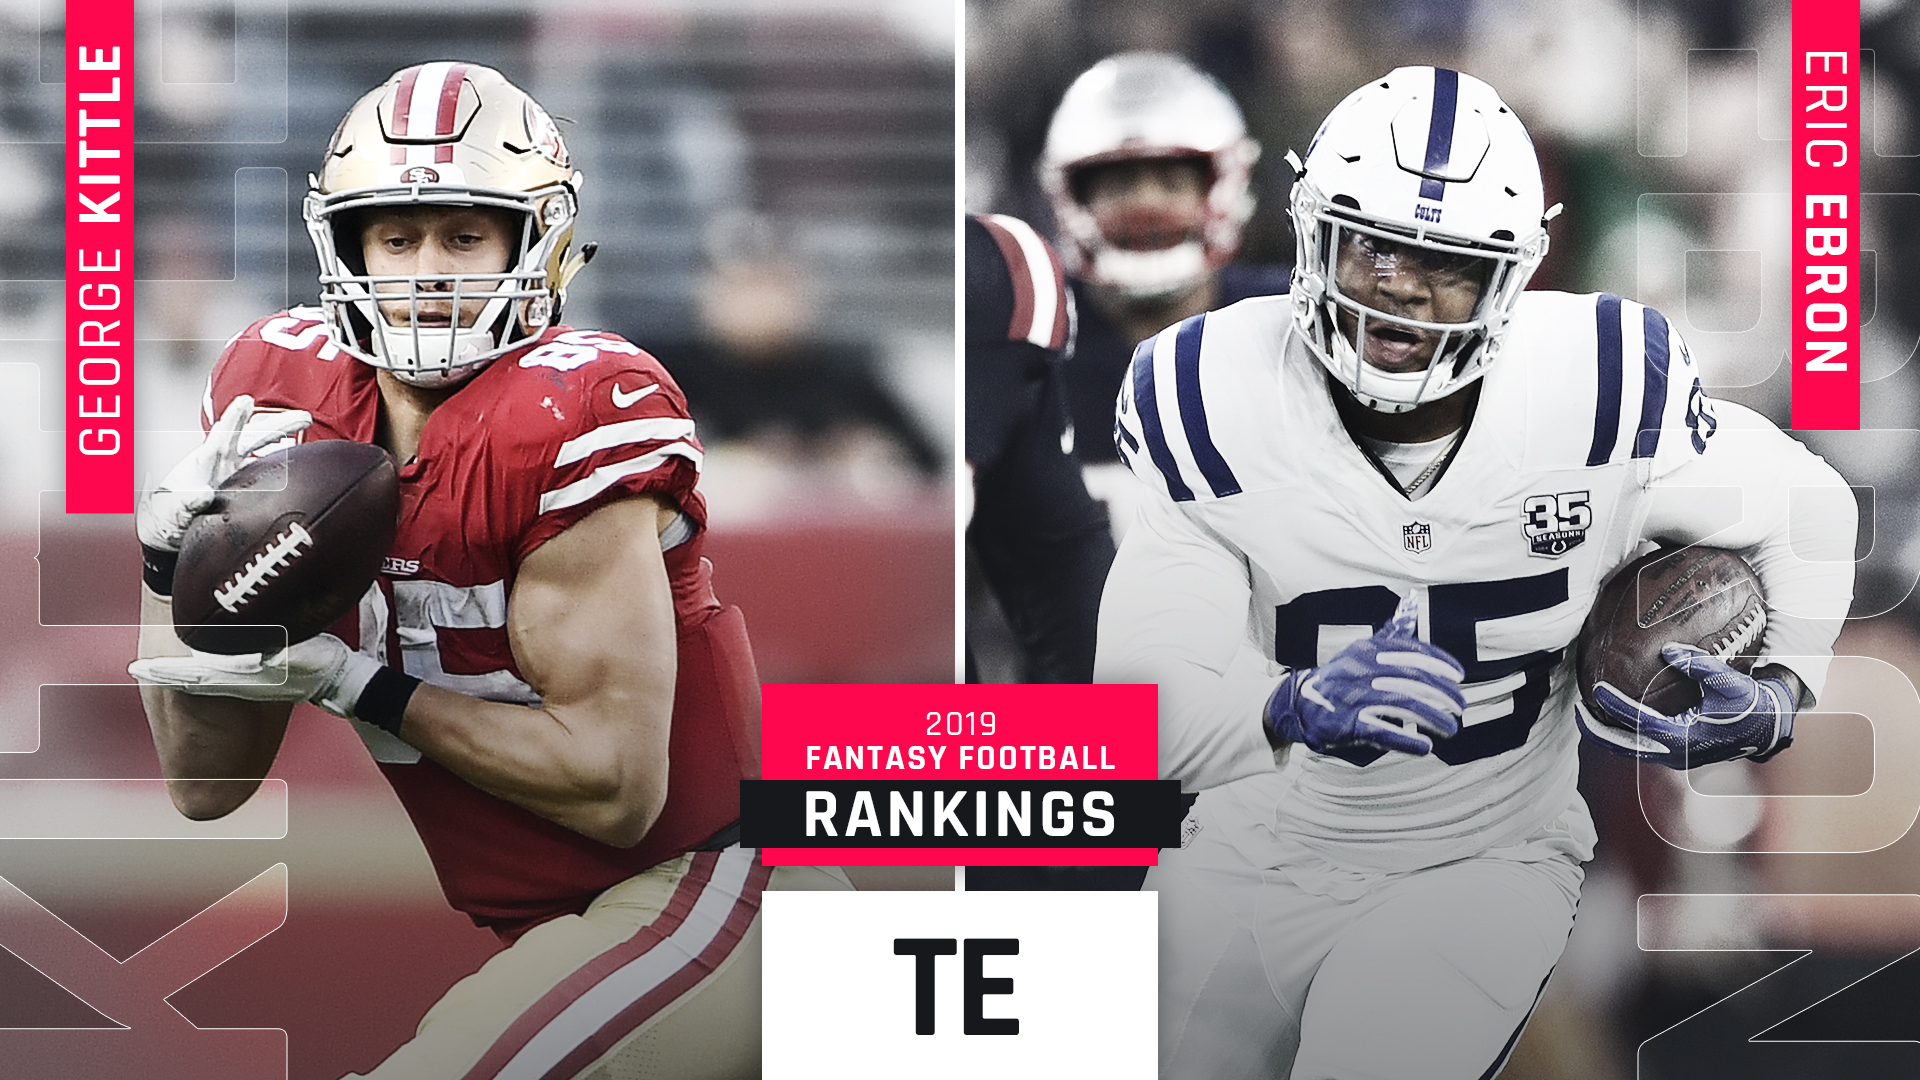 2019 Fantasy Football Tight End Rankings